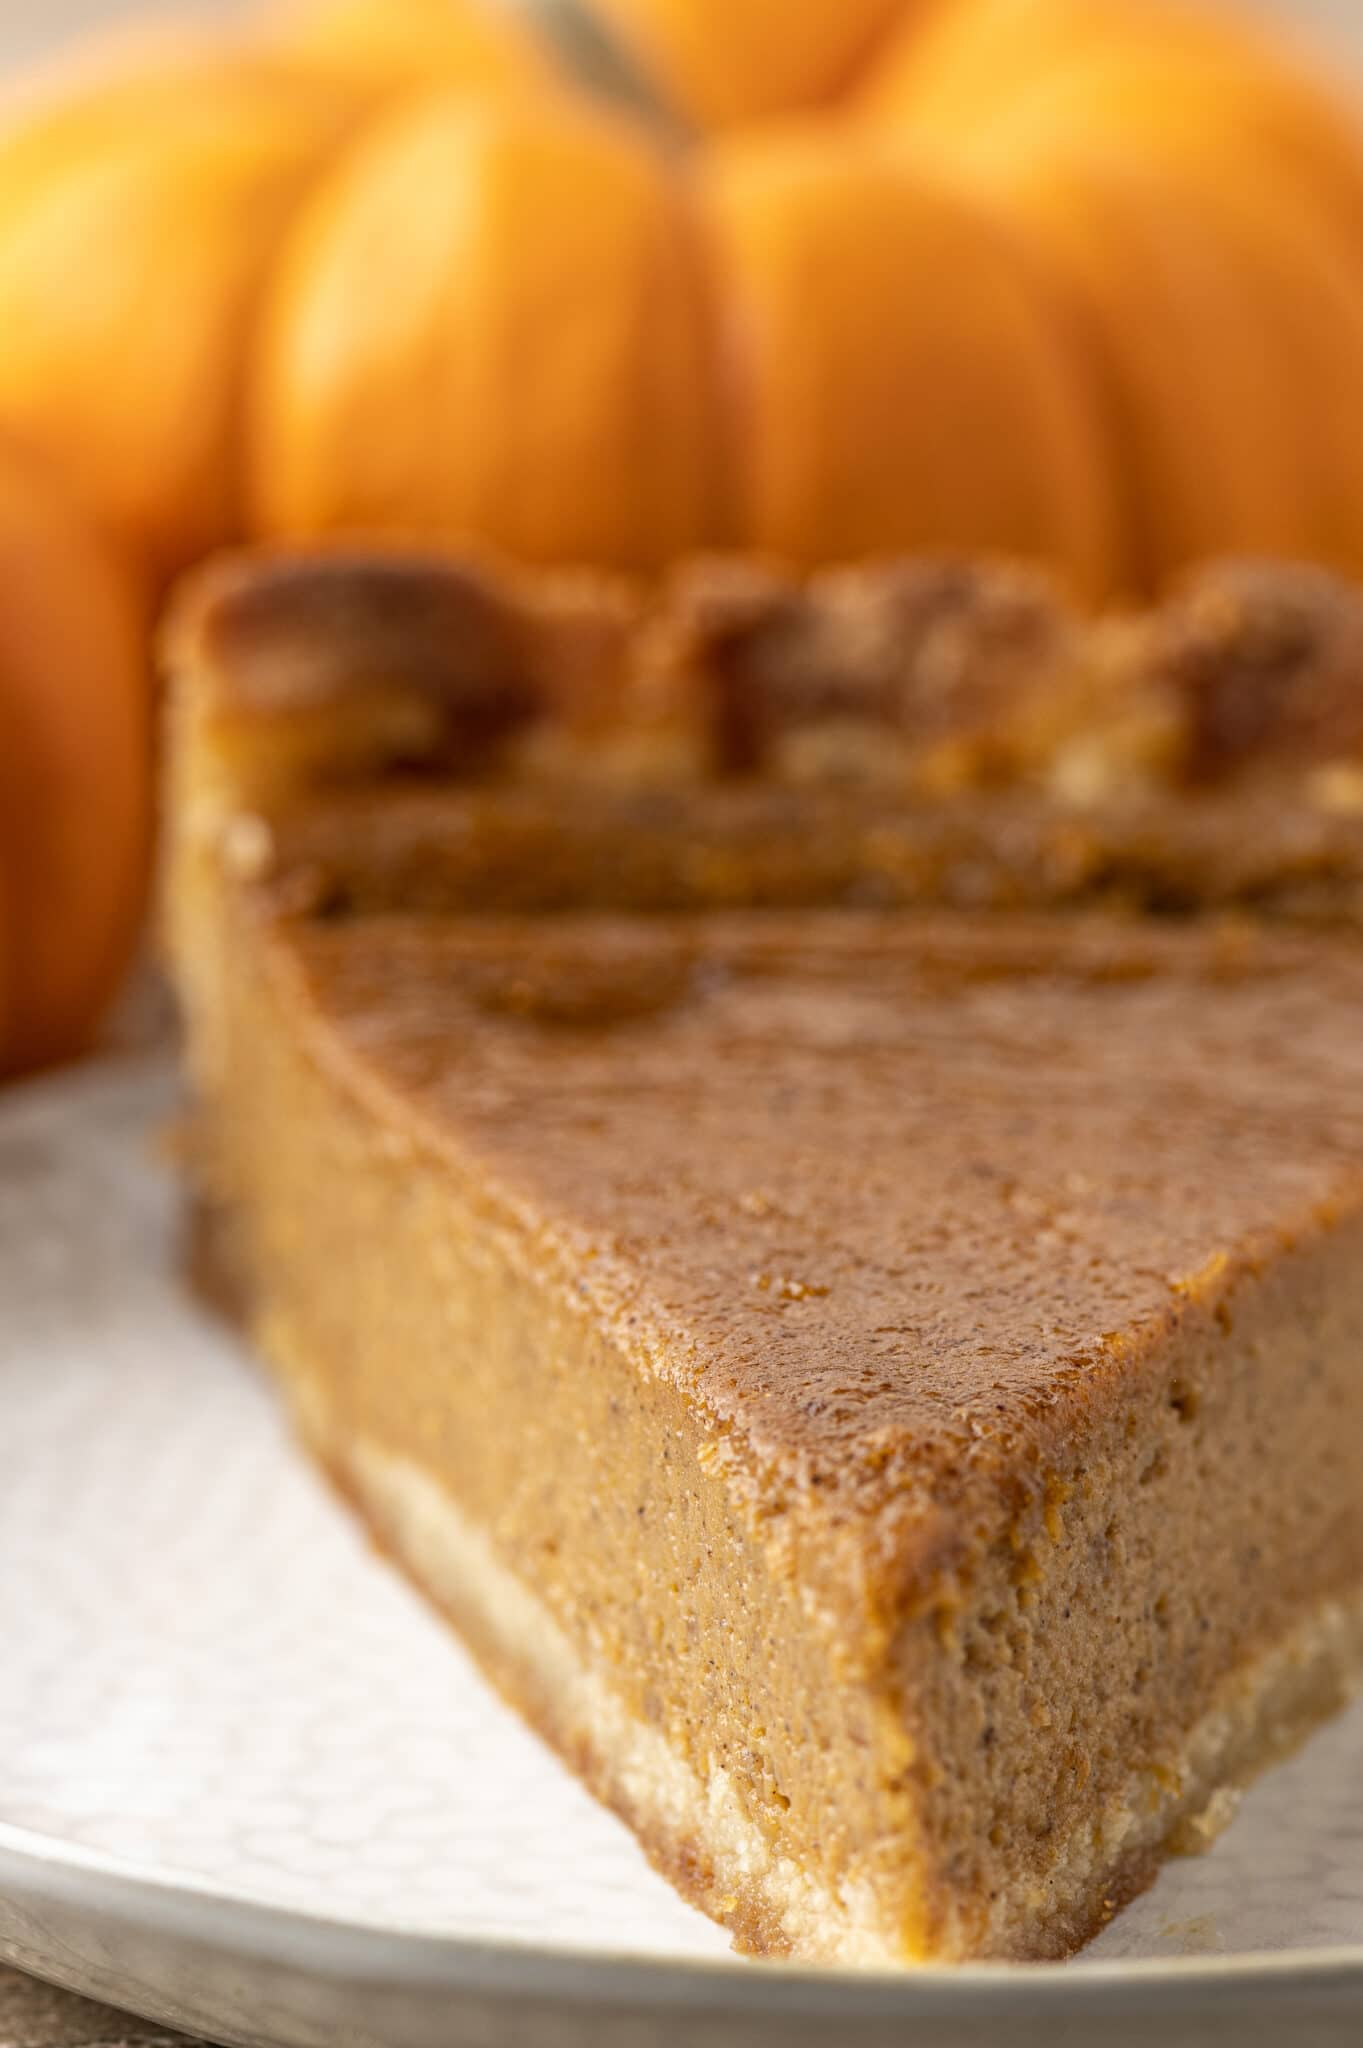 A slice of pumpkin pie with orange pumpkins in the background